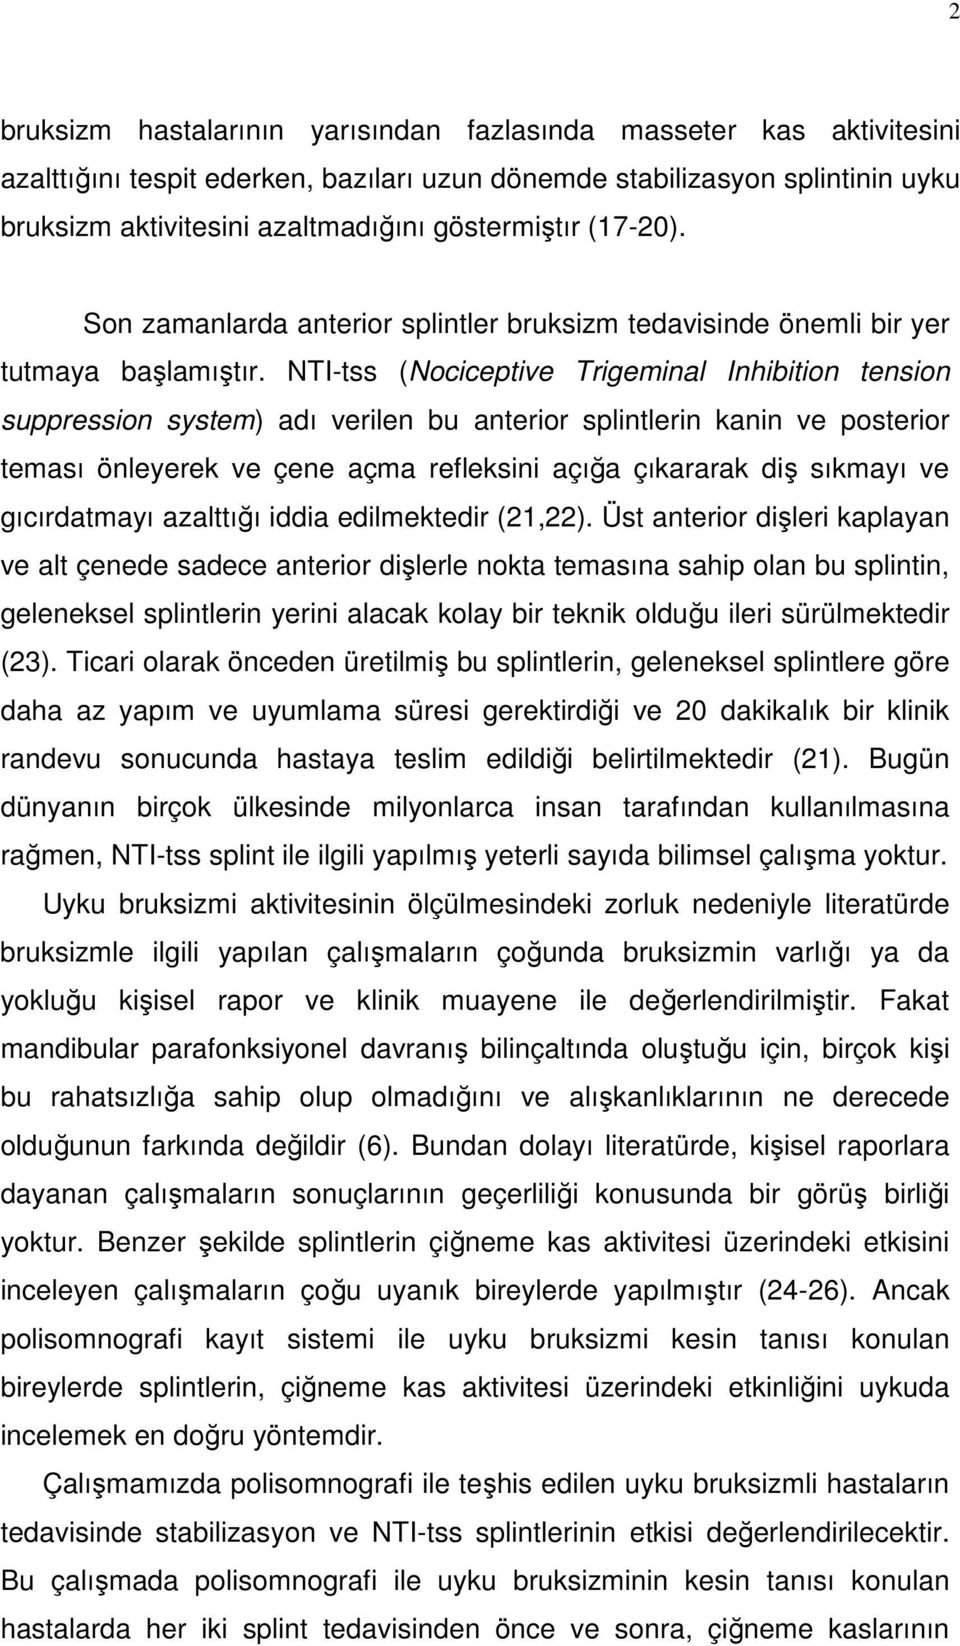 NTI-tss (Nociceptive Trigeminal Inhibition tension suppression system) adı verilen bu anterior splintlerin kanin ve posterior teması önleyerek ve çene açma refleksini açığa çıkararak diş sıkmayı ve